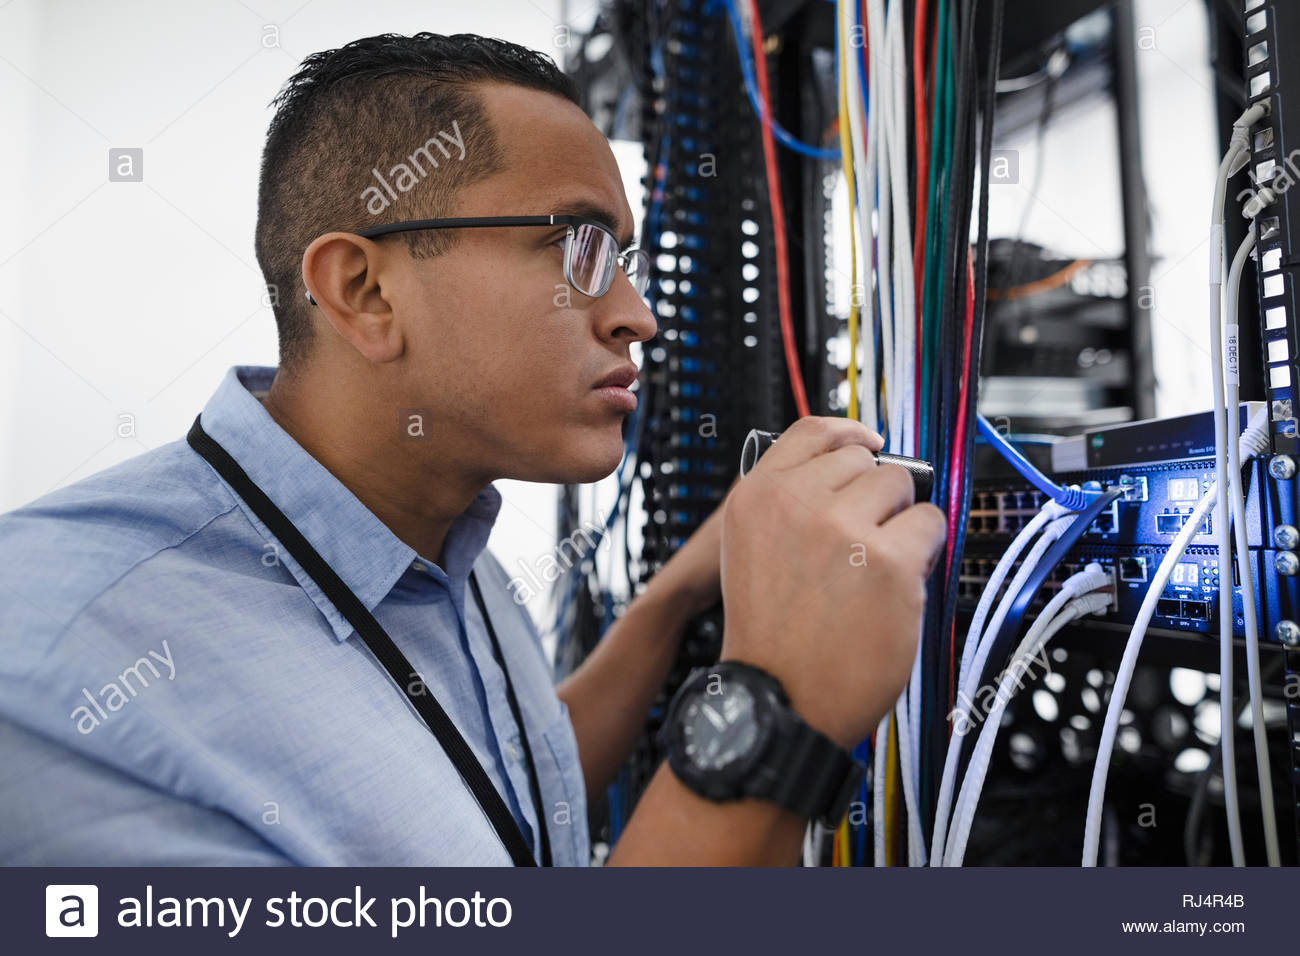 Focused IT technician examining connection plugs in server room - Stock Image